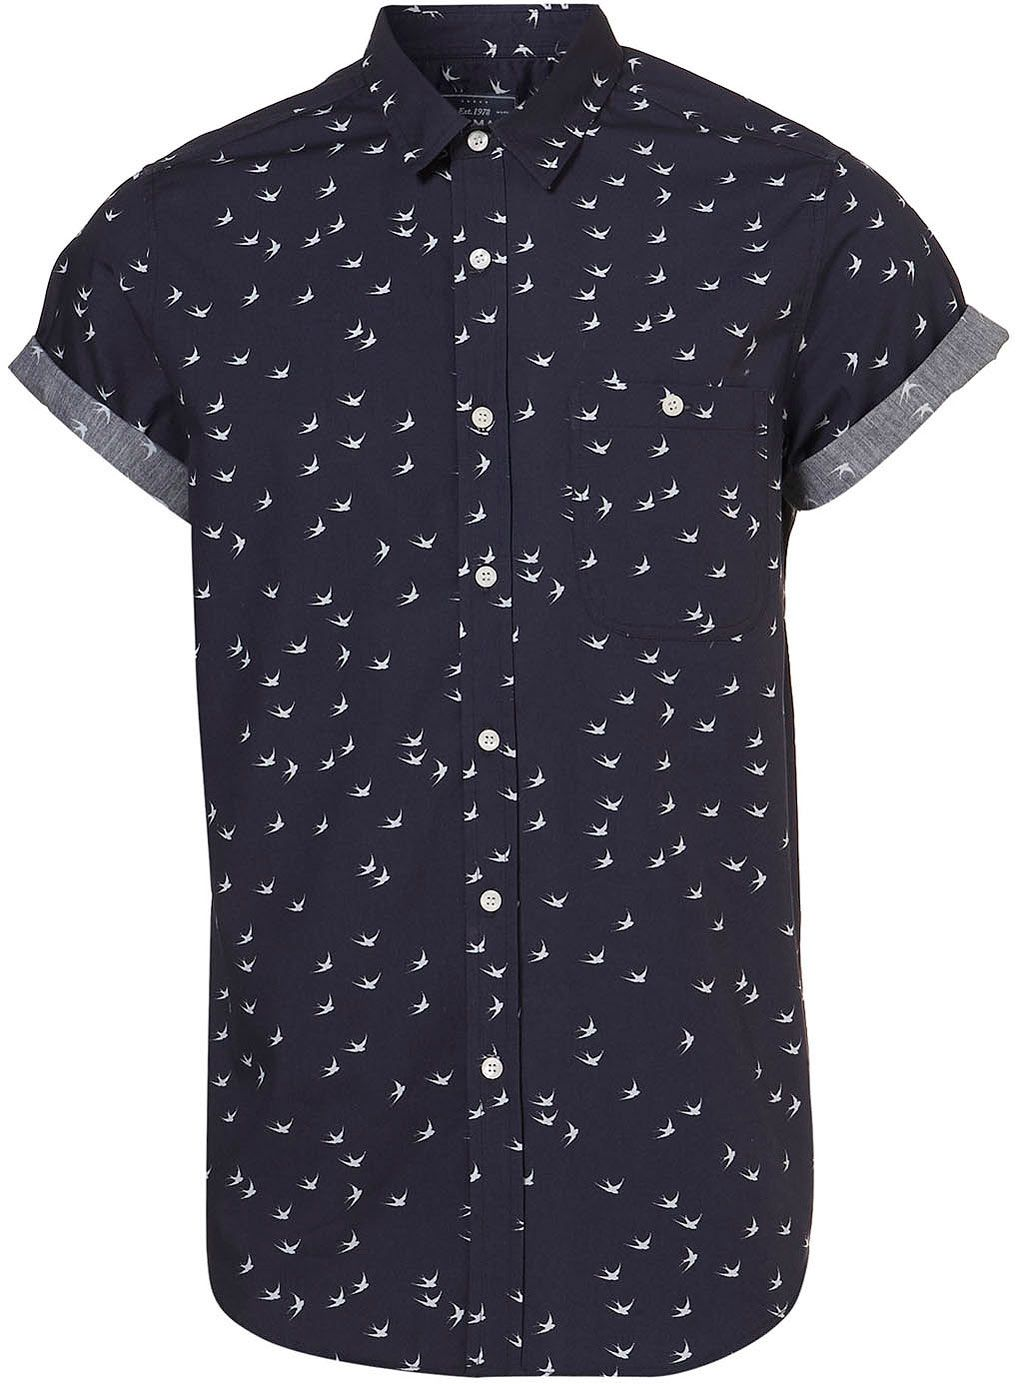 fd66ed620ec5 Navy Swallow Print Short Sleeve Shirt - Sale Shirts - Sale Offers - Sale  Special Offers